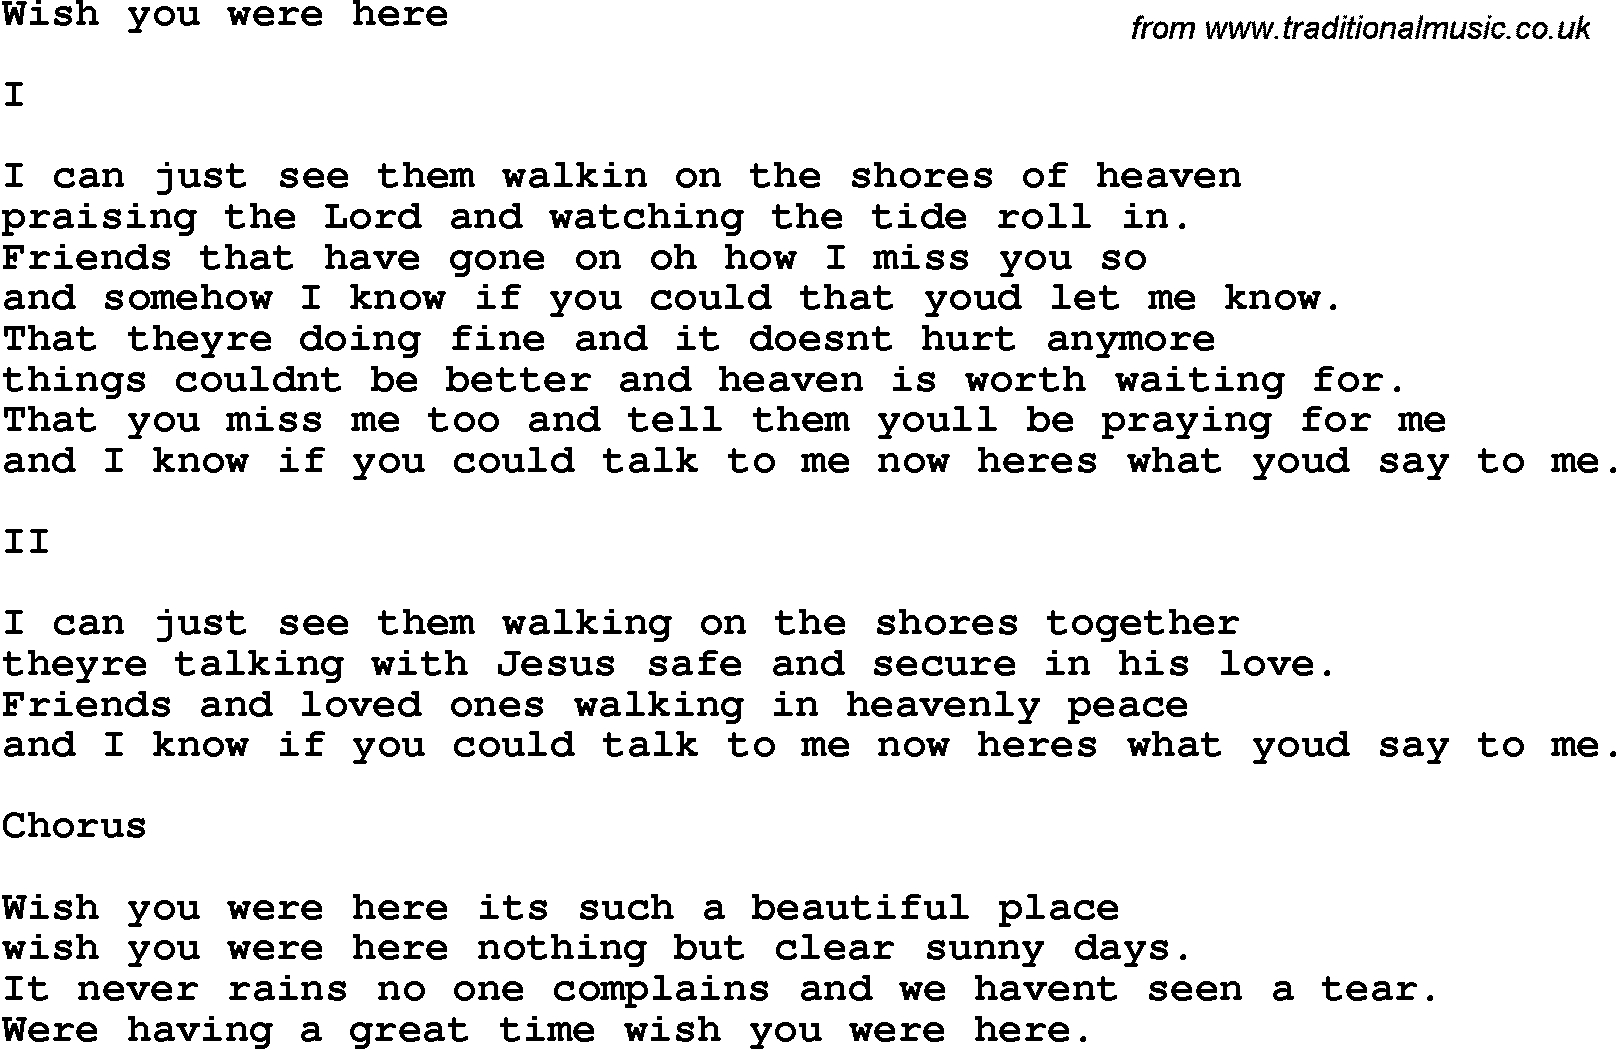 southern and bluegrass gospel song wish you were here lyrics